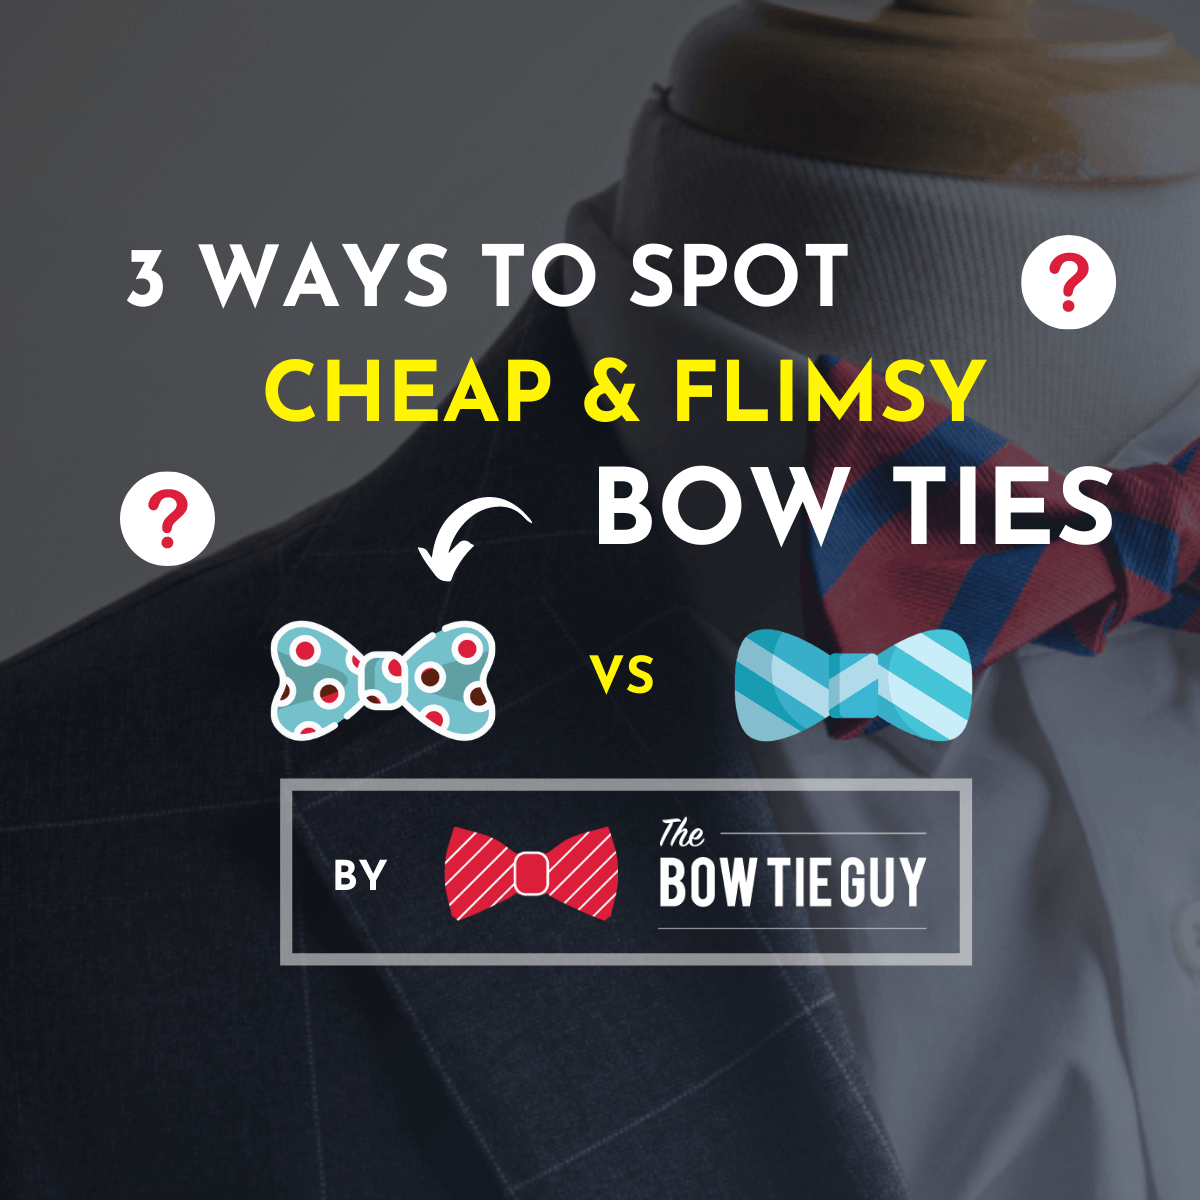 3 ways to spot cheap flimsy and low quality bow ties